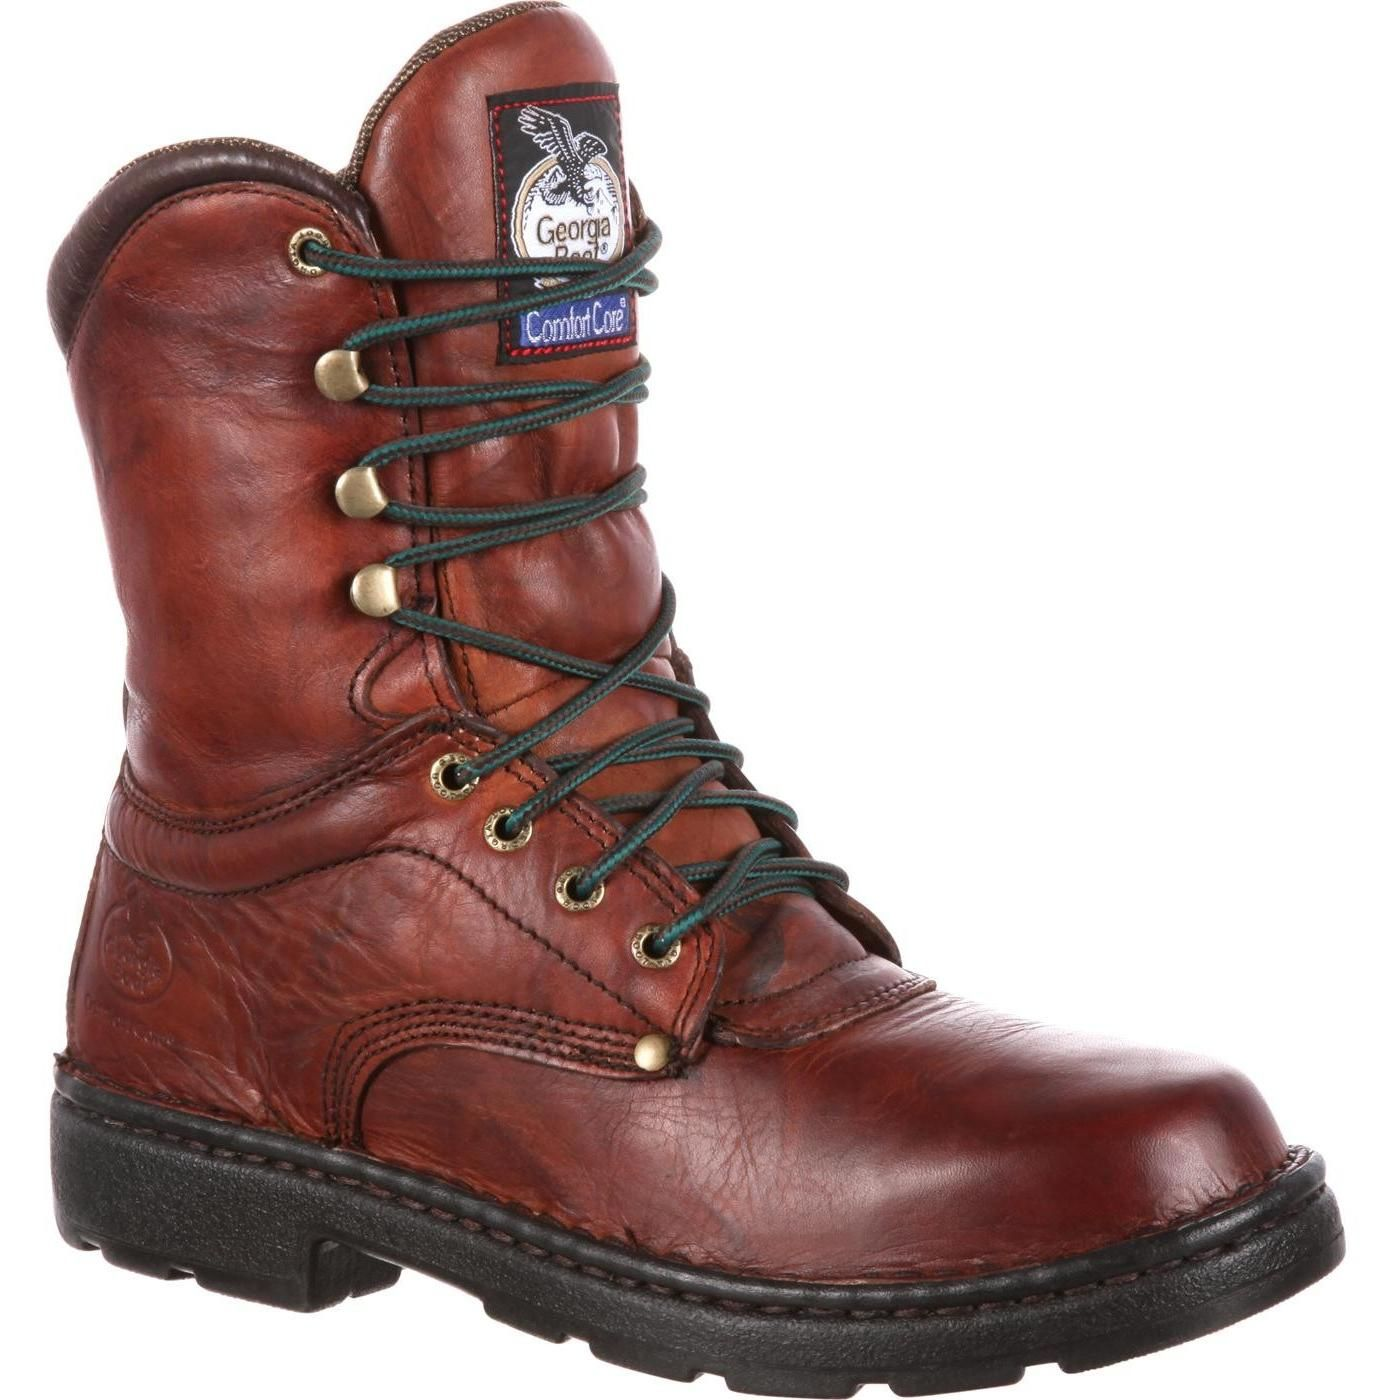 Men S Georgia Boots Eagle Light Work Boots In 2020 Light Work Boots Georgia Boots Boots Men